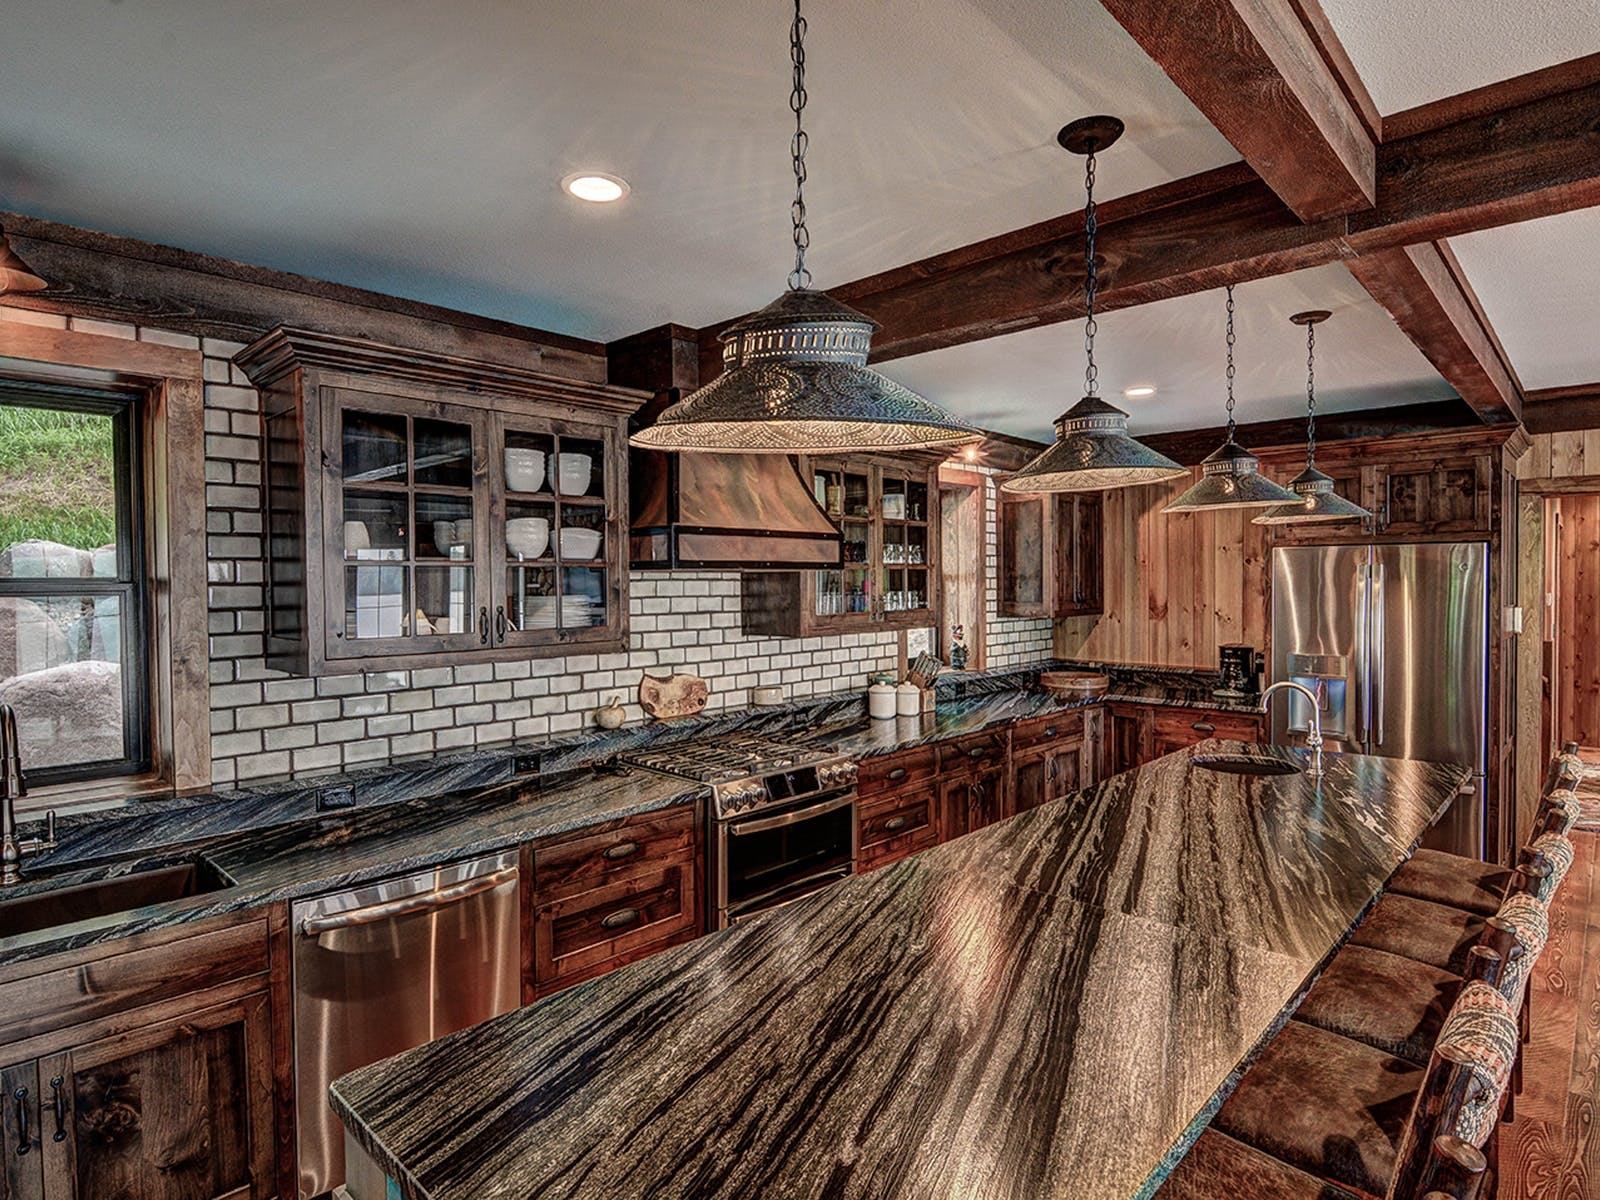 kitchen with wood-paneled walls, granite countertops, and wool-upholstered chairs